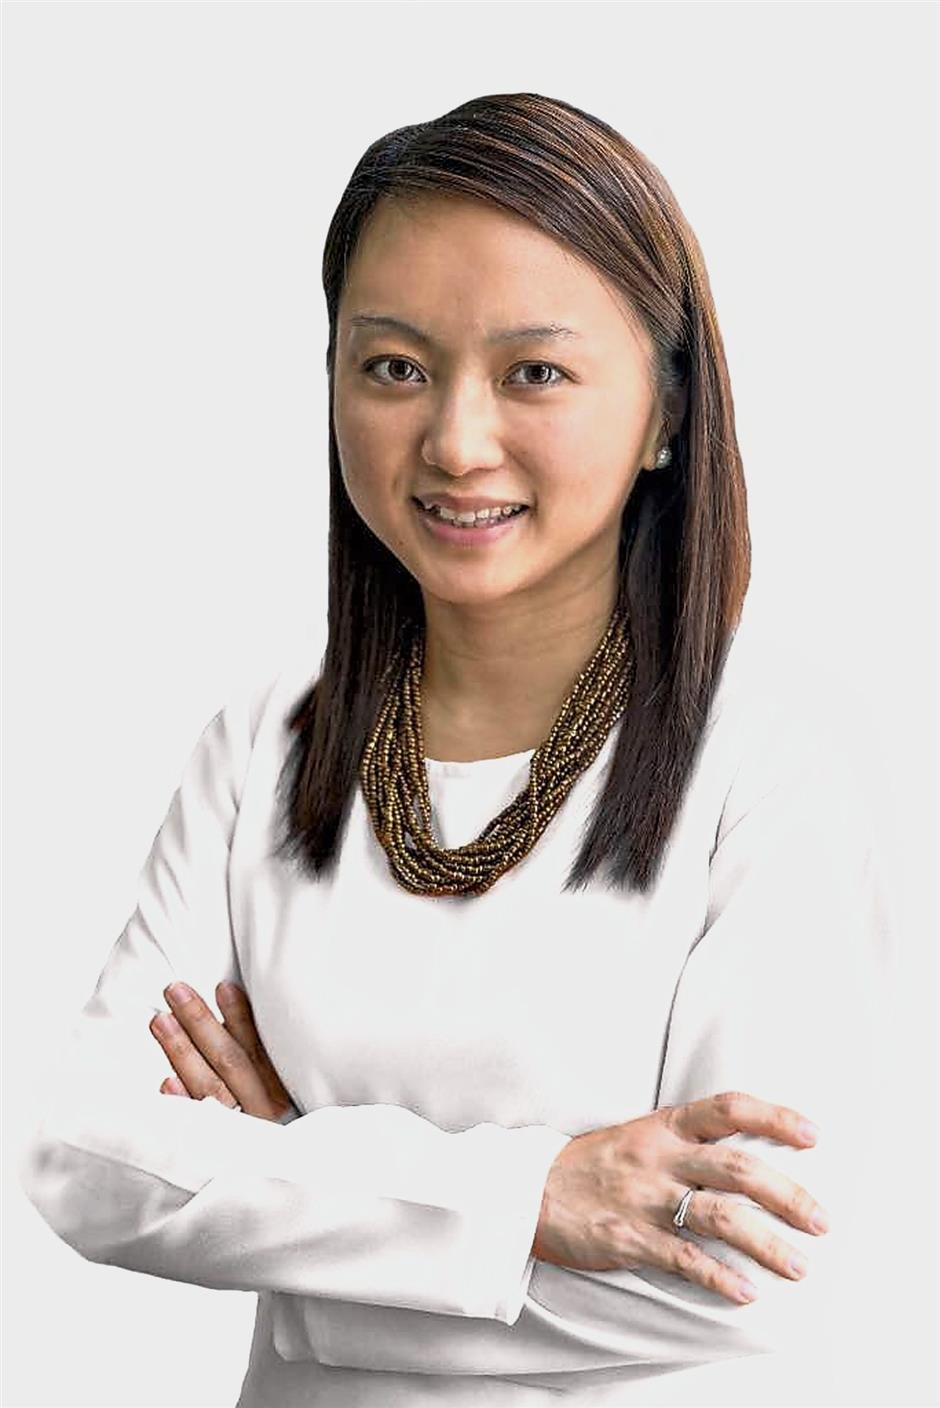 Yeoh will get Lims help when she moves to the Segambut seat.